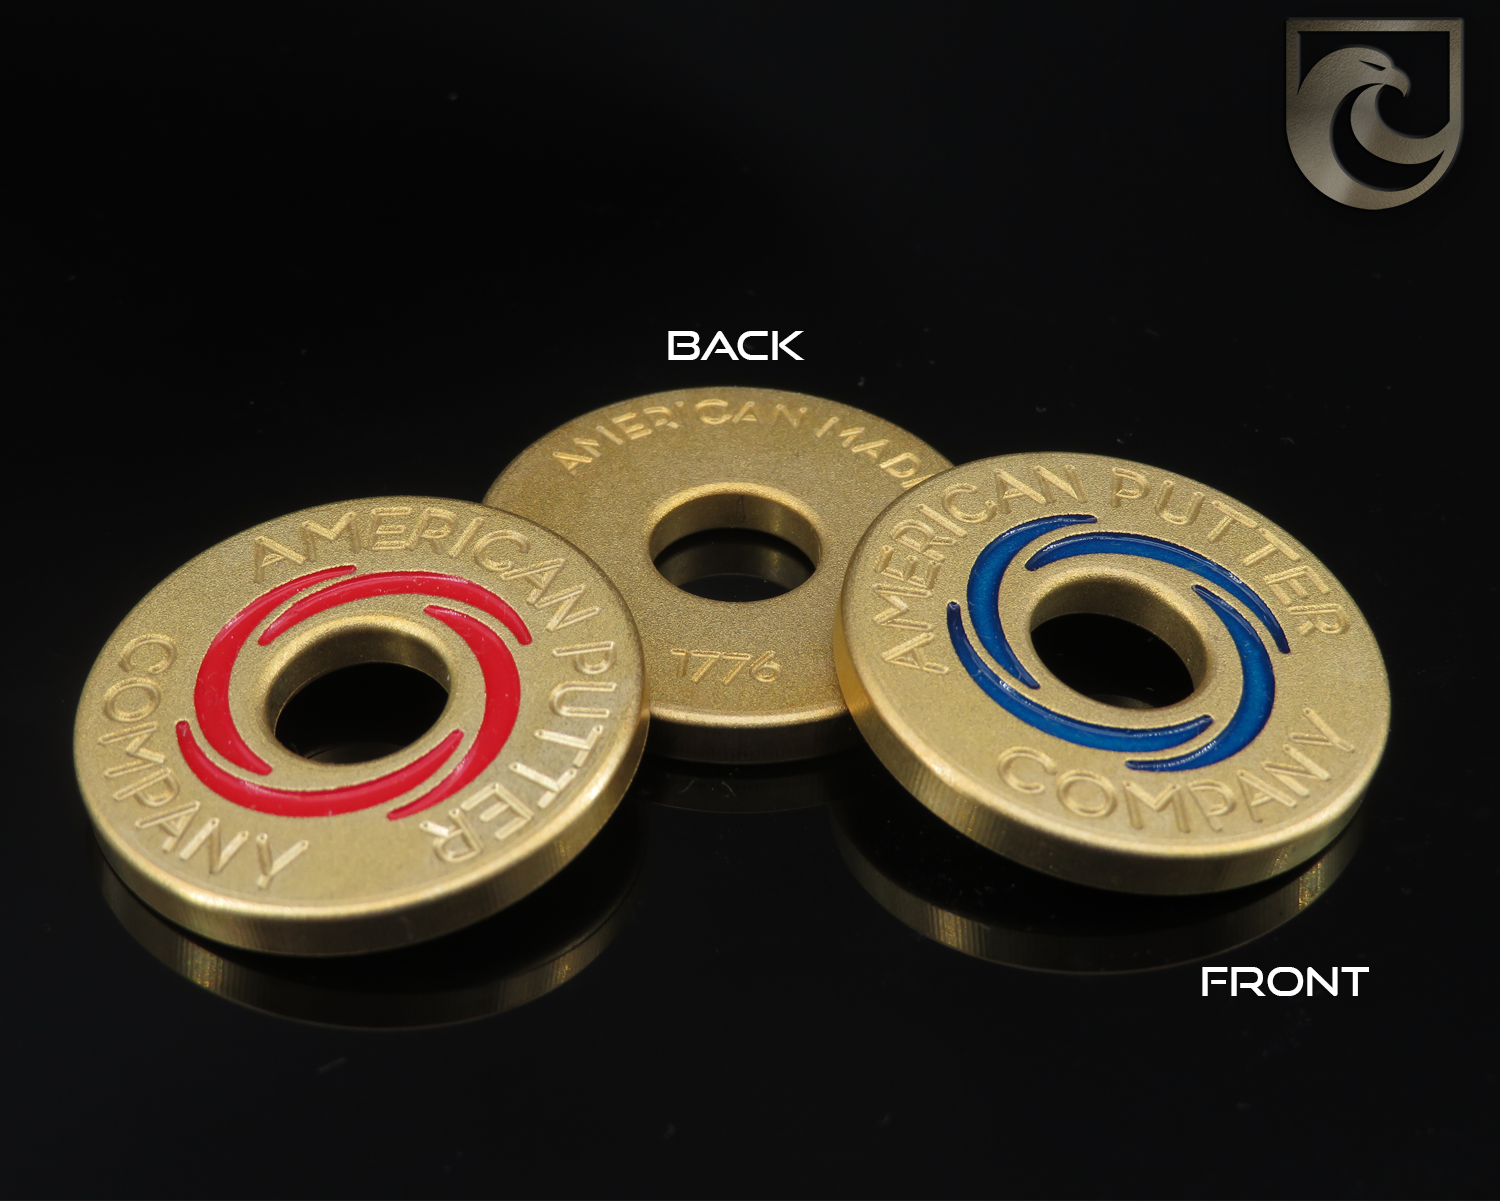 ( PICK CUSTOM COLOR) American Putter Company Halo Vortex Ball Marker BRASS : Hand Painted